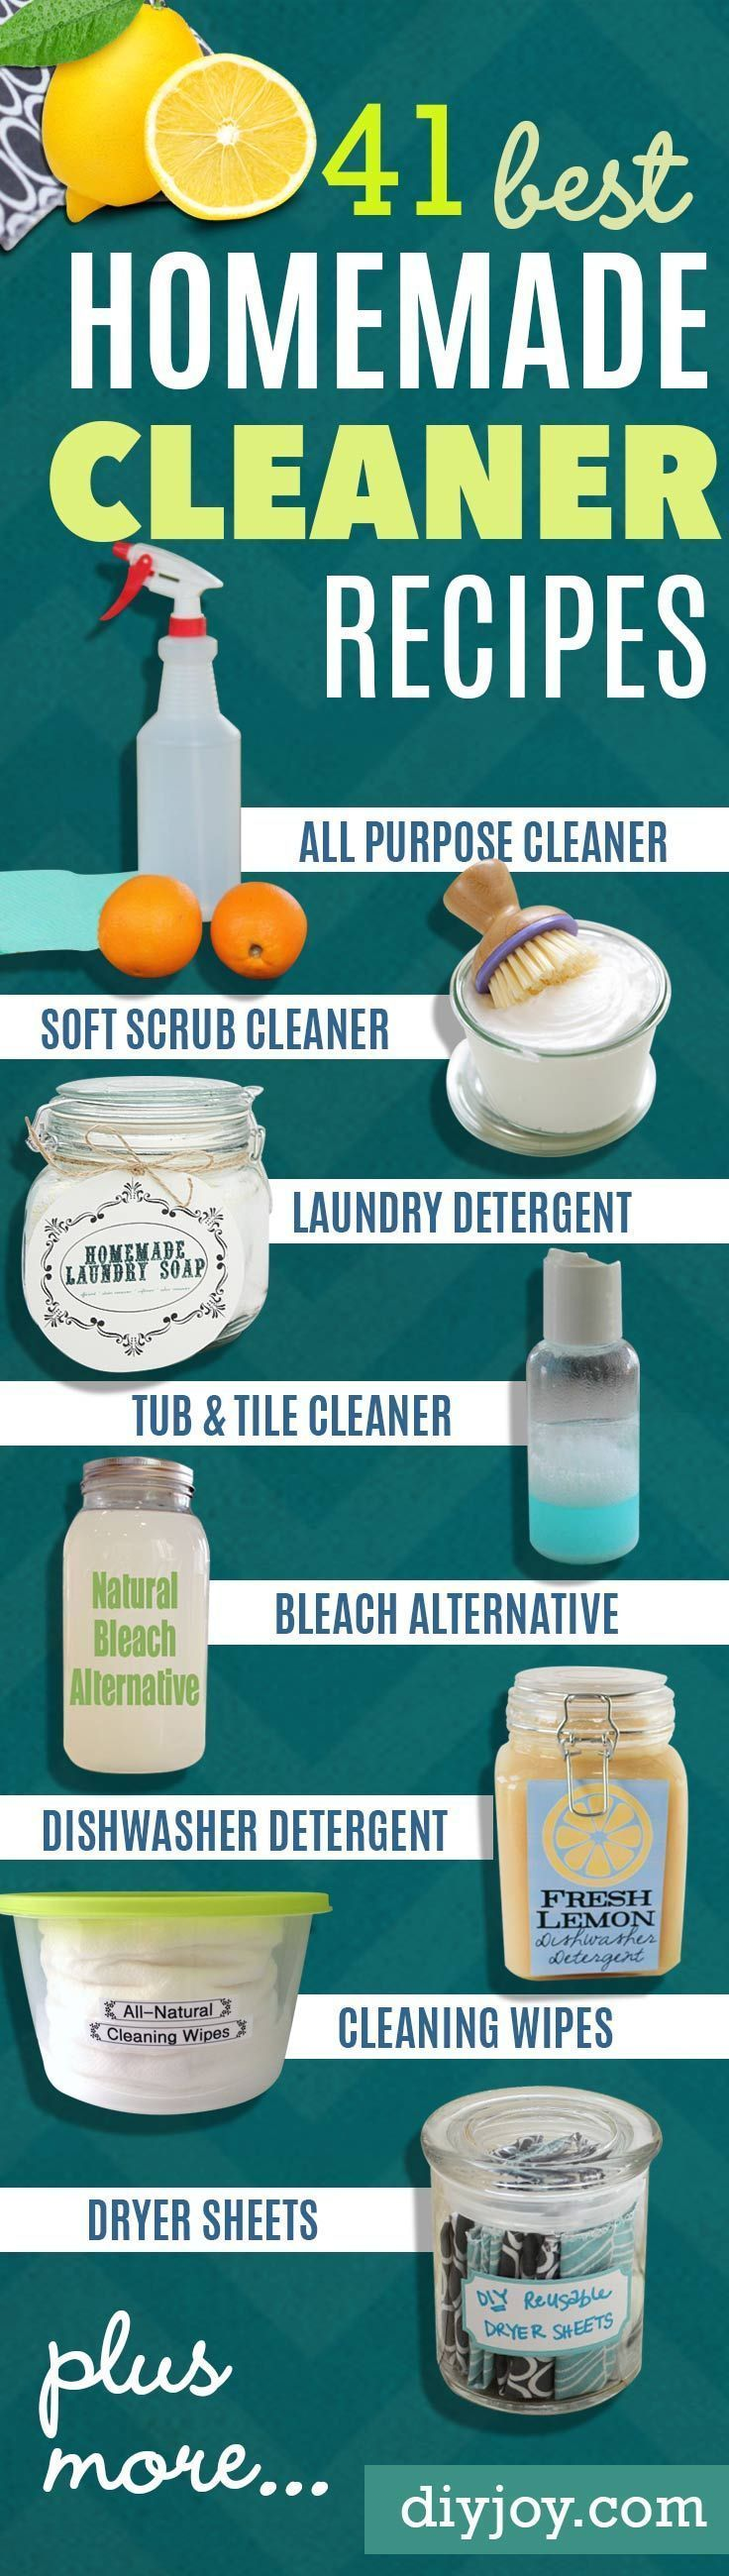 Best Natural Homemade DIY Cleaners and Recipes - All Purposed Home Care and Cleaning with Vinegar, Essential Oils and Other Natural Ingredients For Cleaning Bathroom, Kitchen, Floors, Laundry, Furniture and More http://diyjoy.com/best-homemade-cleaners-re